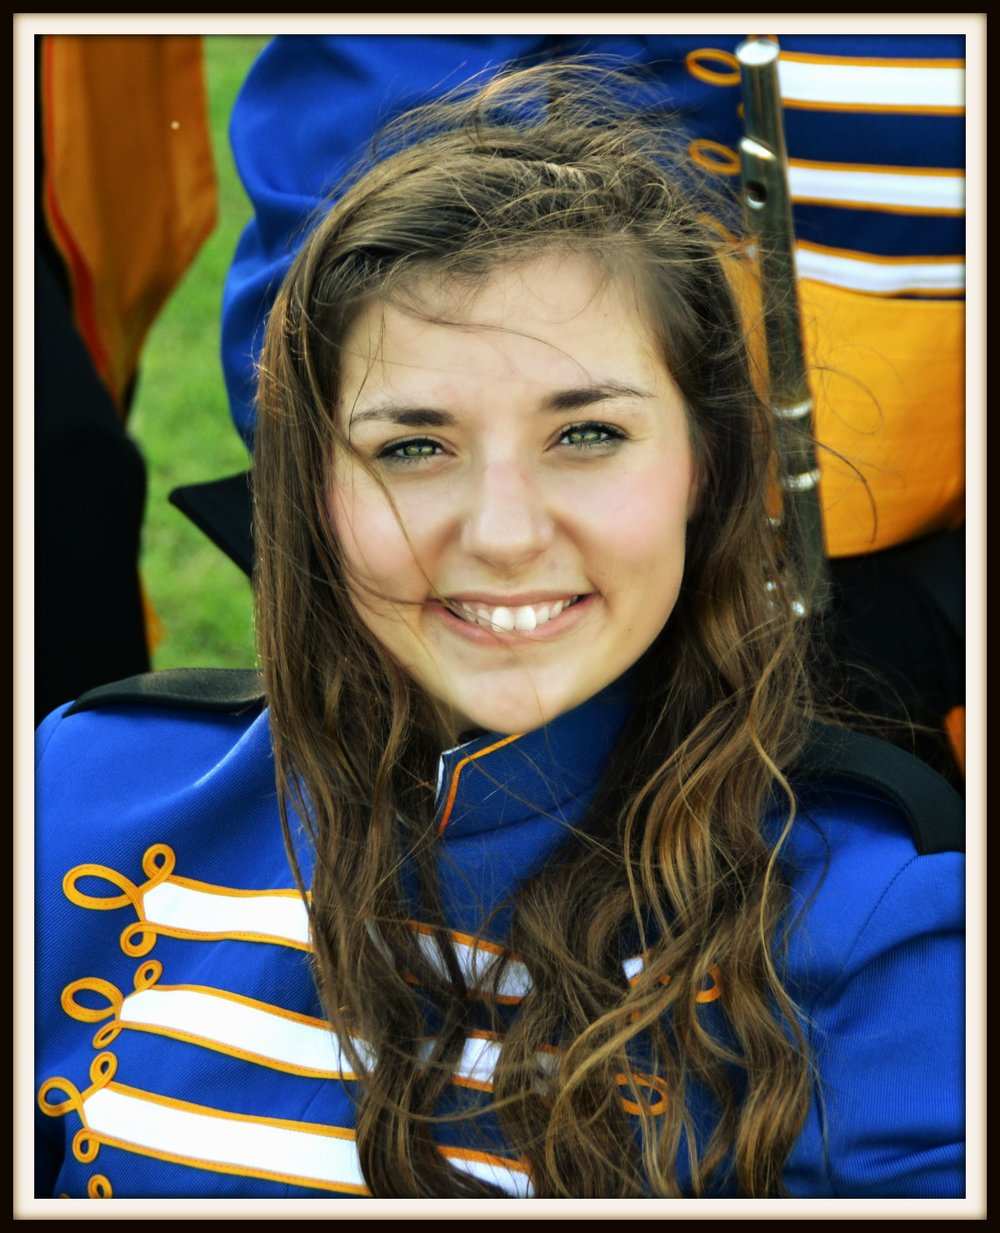 Band Photos 16-17 050.jpg